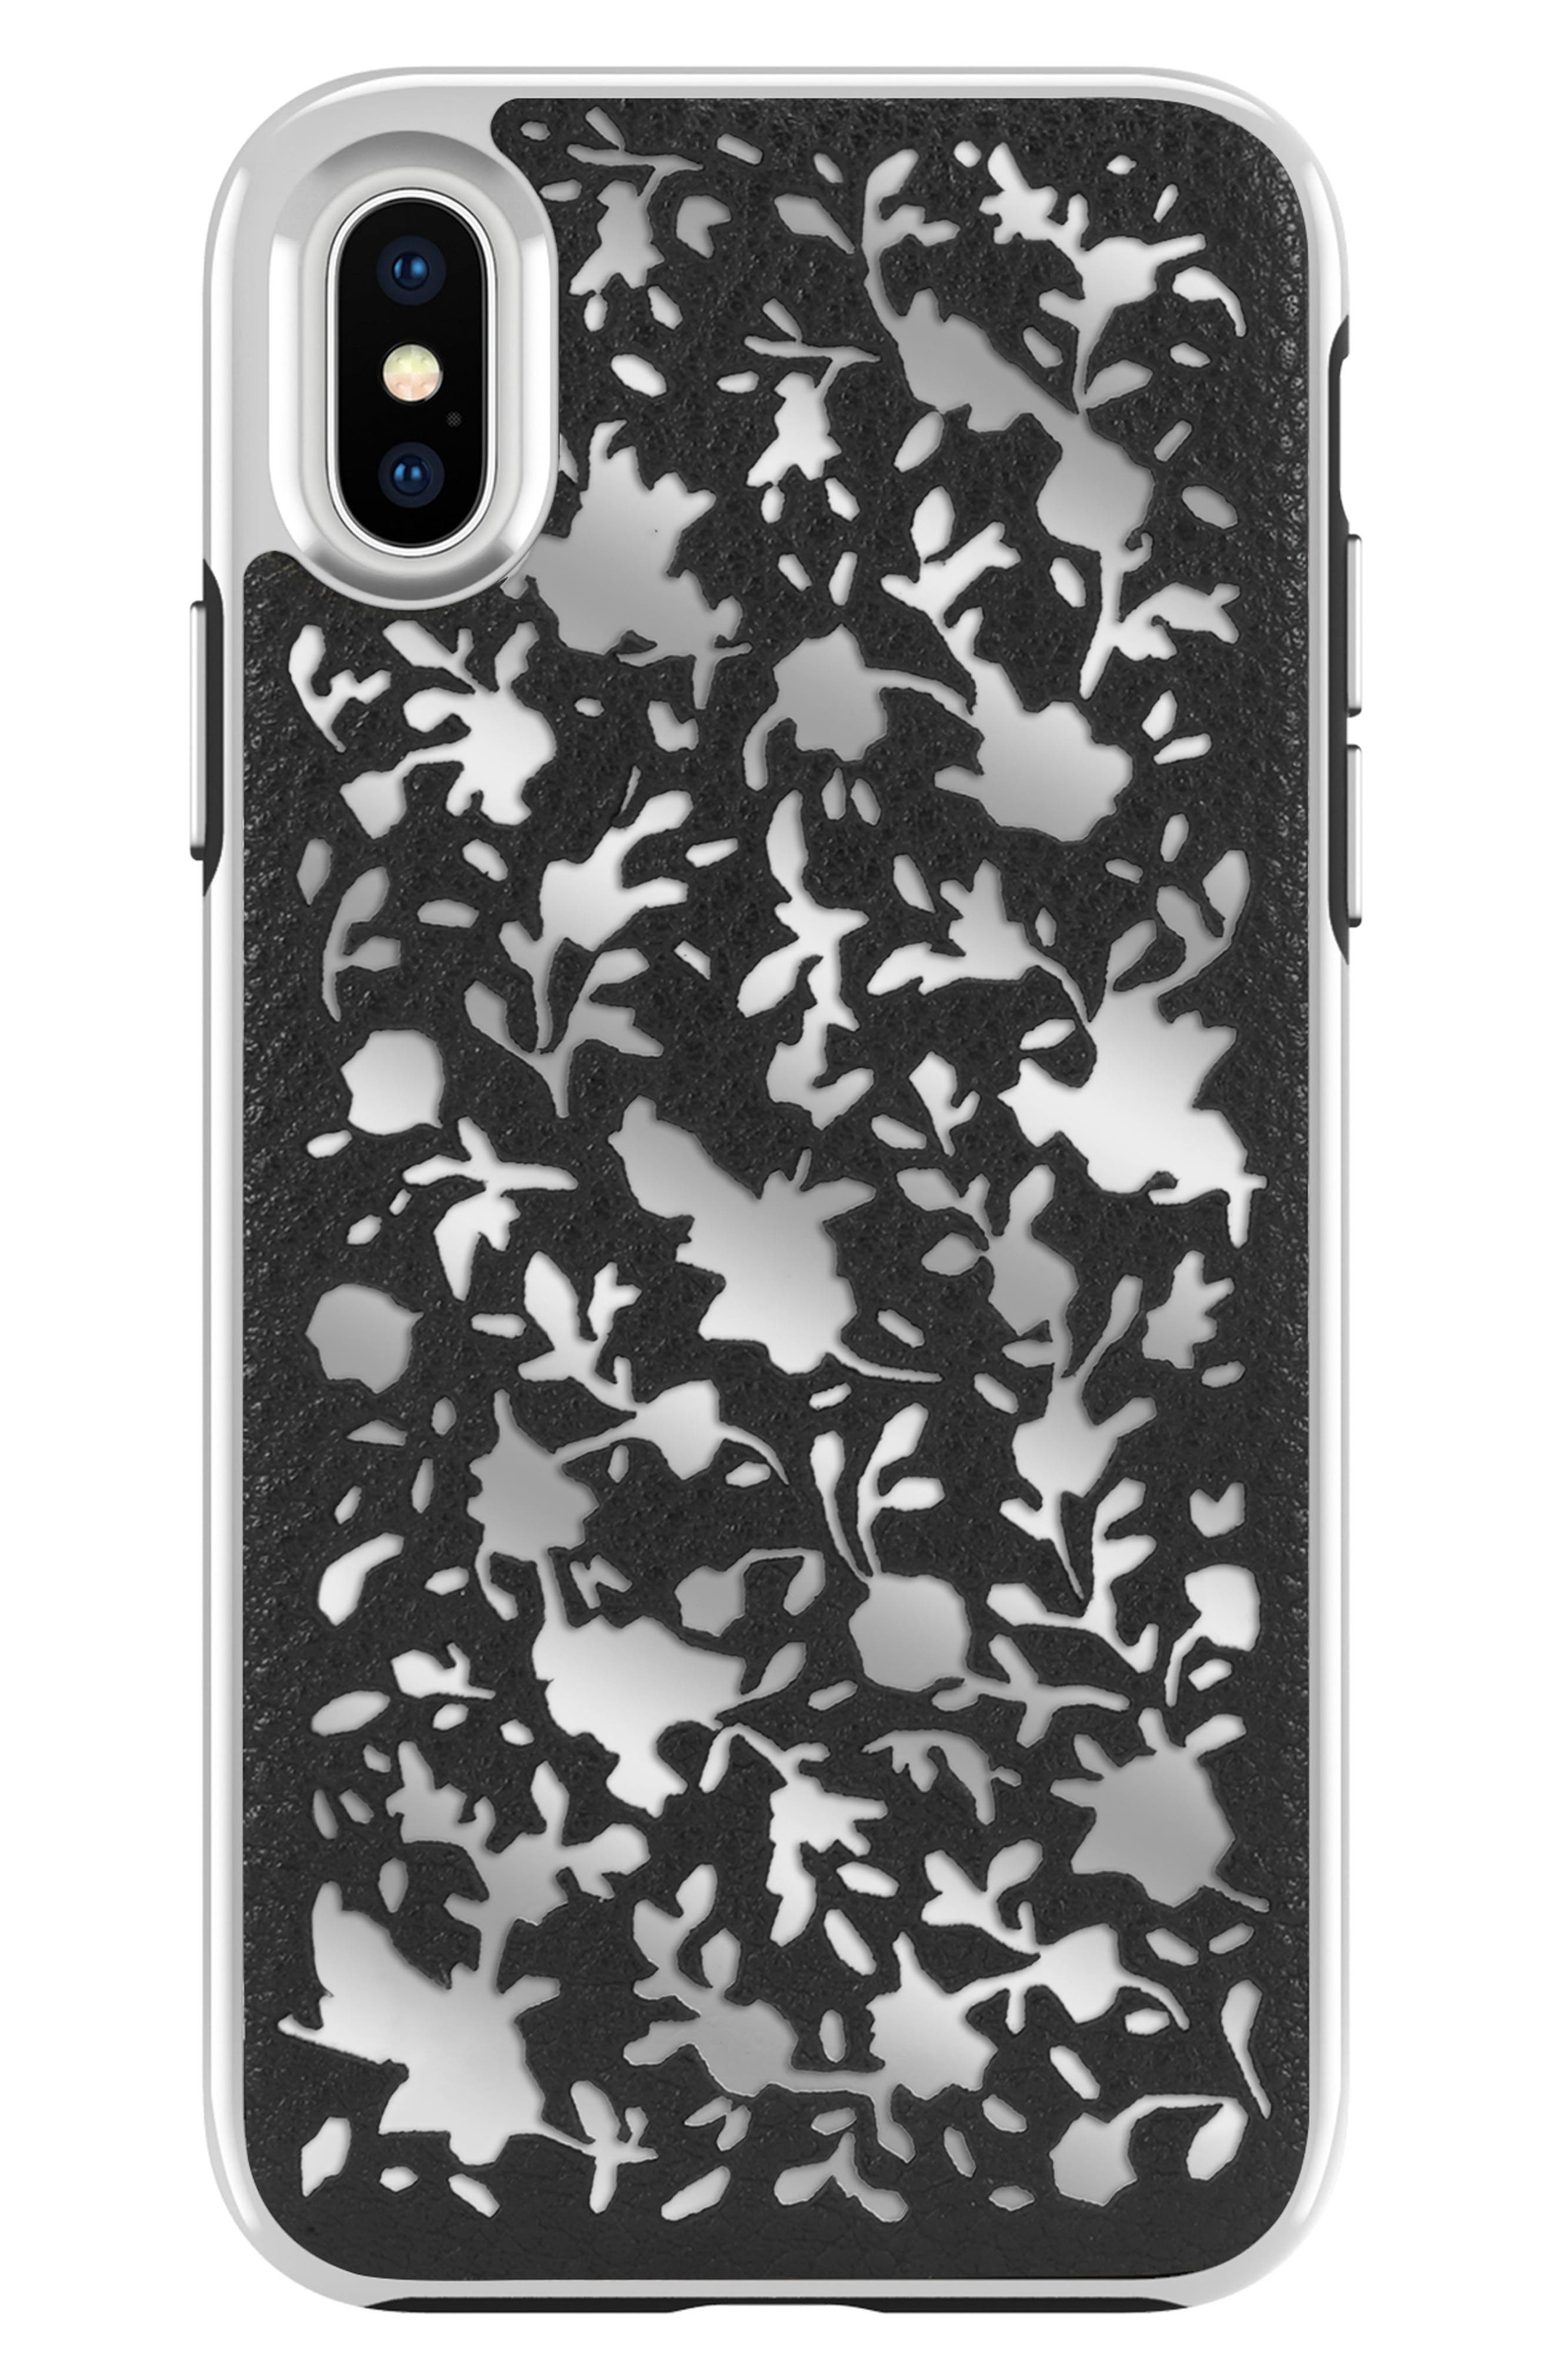 Luxury Calls Ditsy Floral iPhone X Case,                             Main thumbnail 1, color,                             Black/ Silver